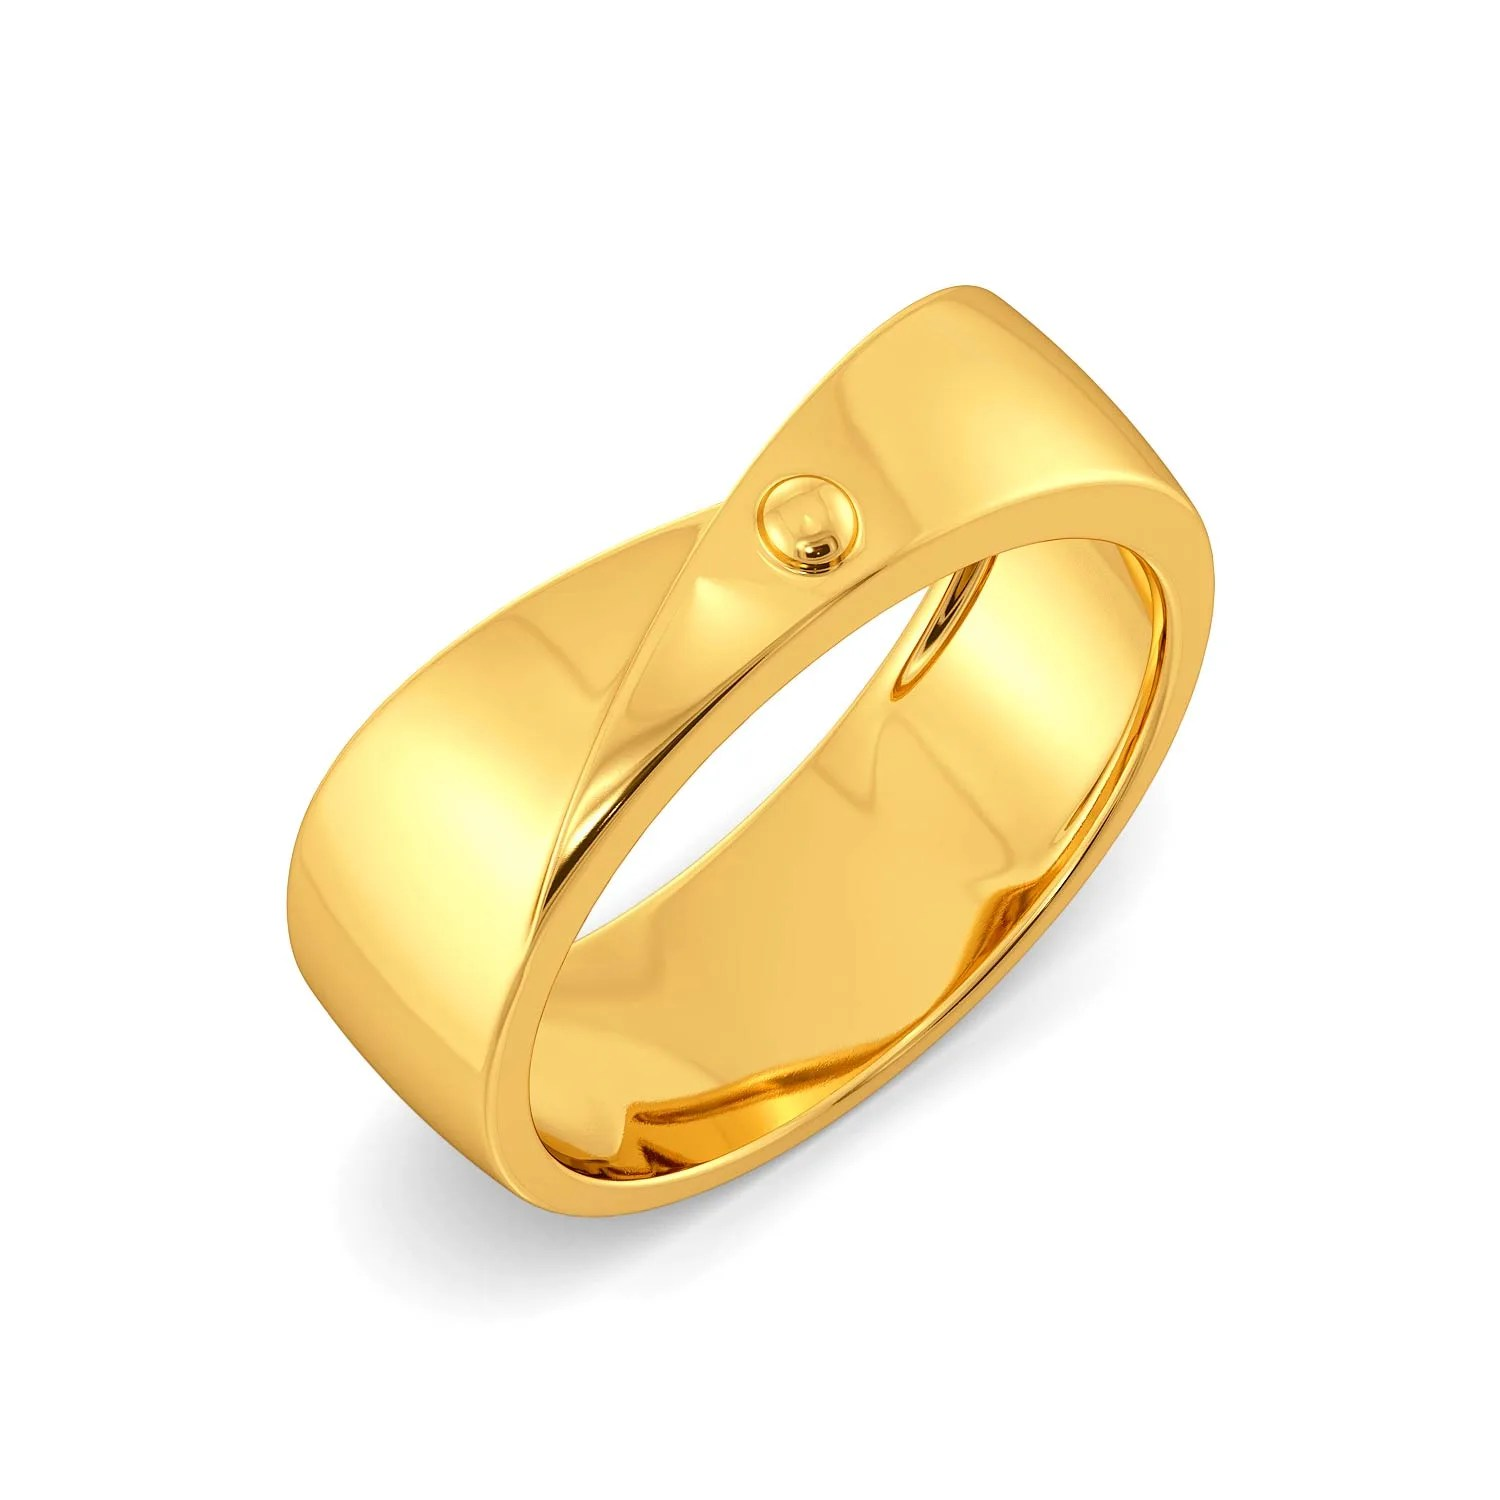 Rings  Buy Ace of Base Gold Rings  Gold  Melorracom